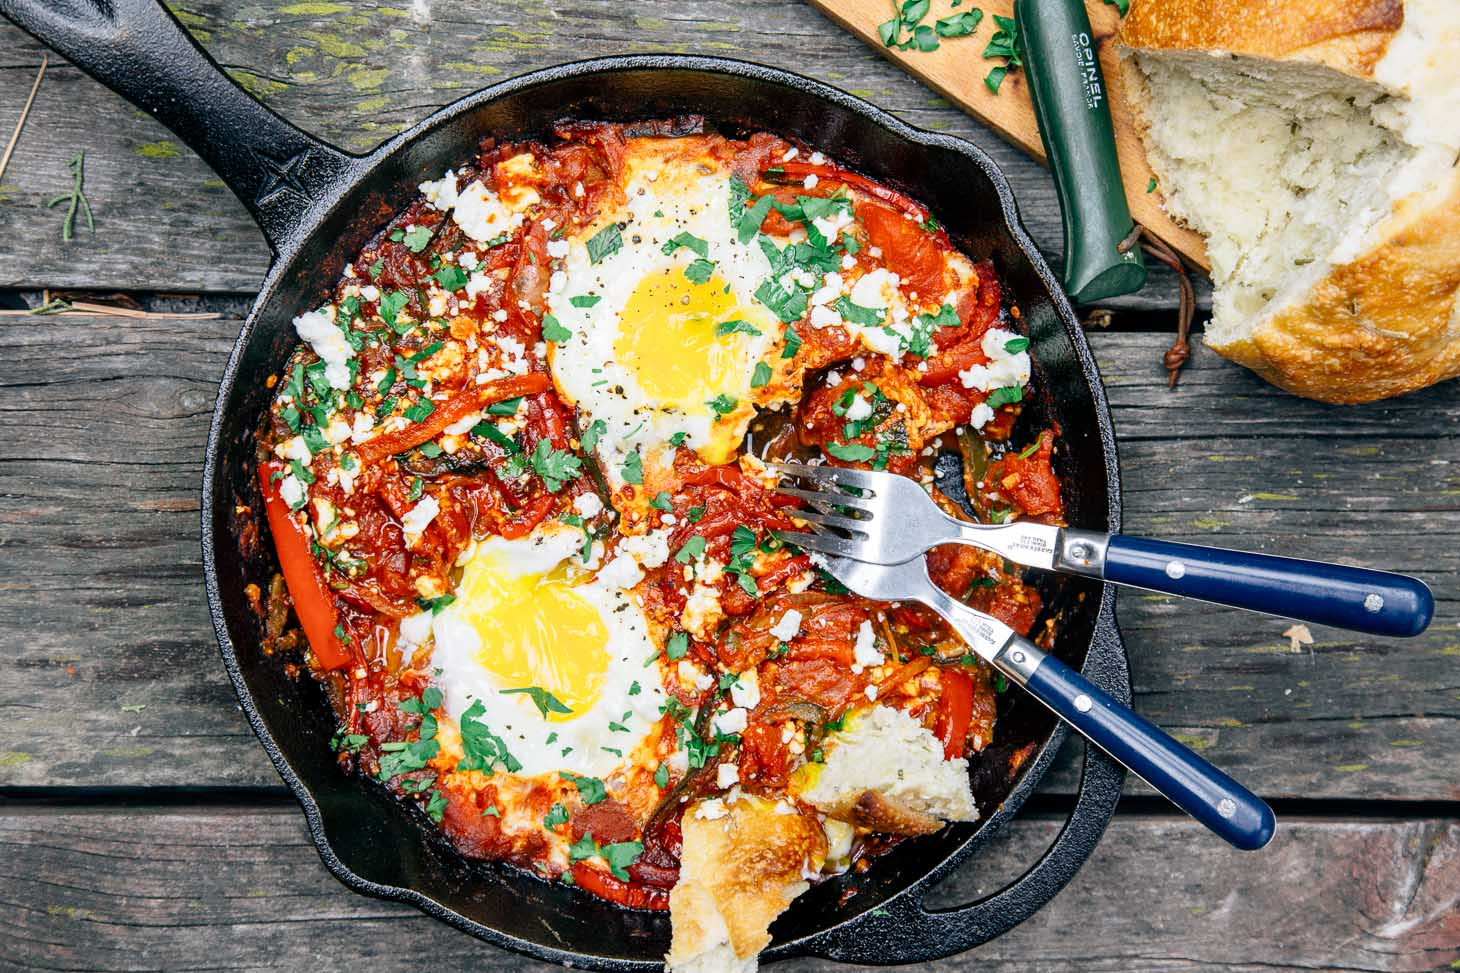 Shakshuka in a cast iron skillet with two eggs and bread